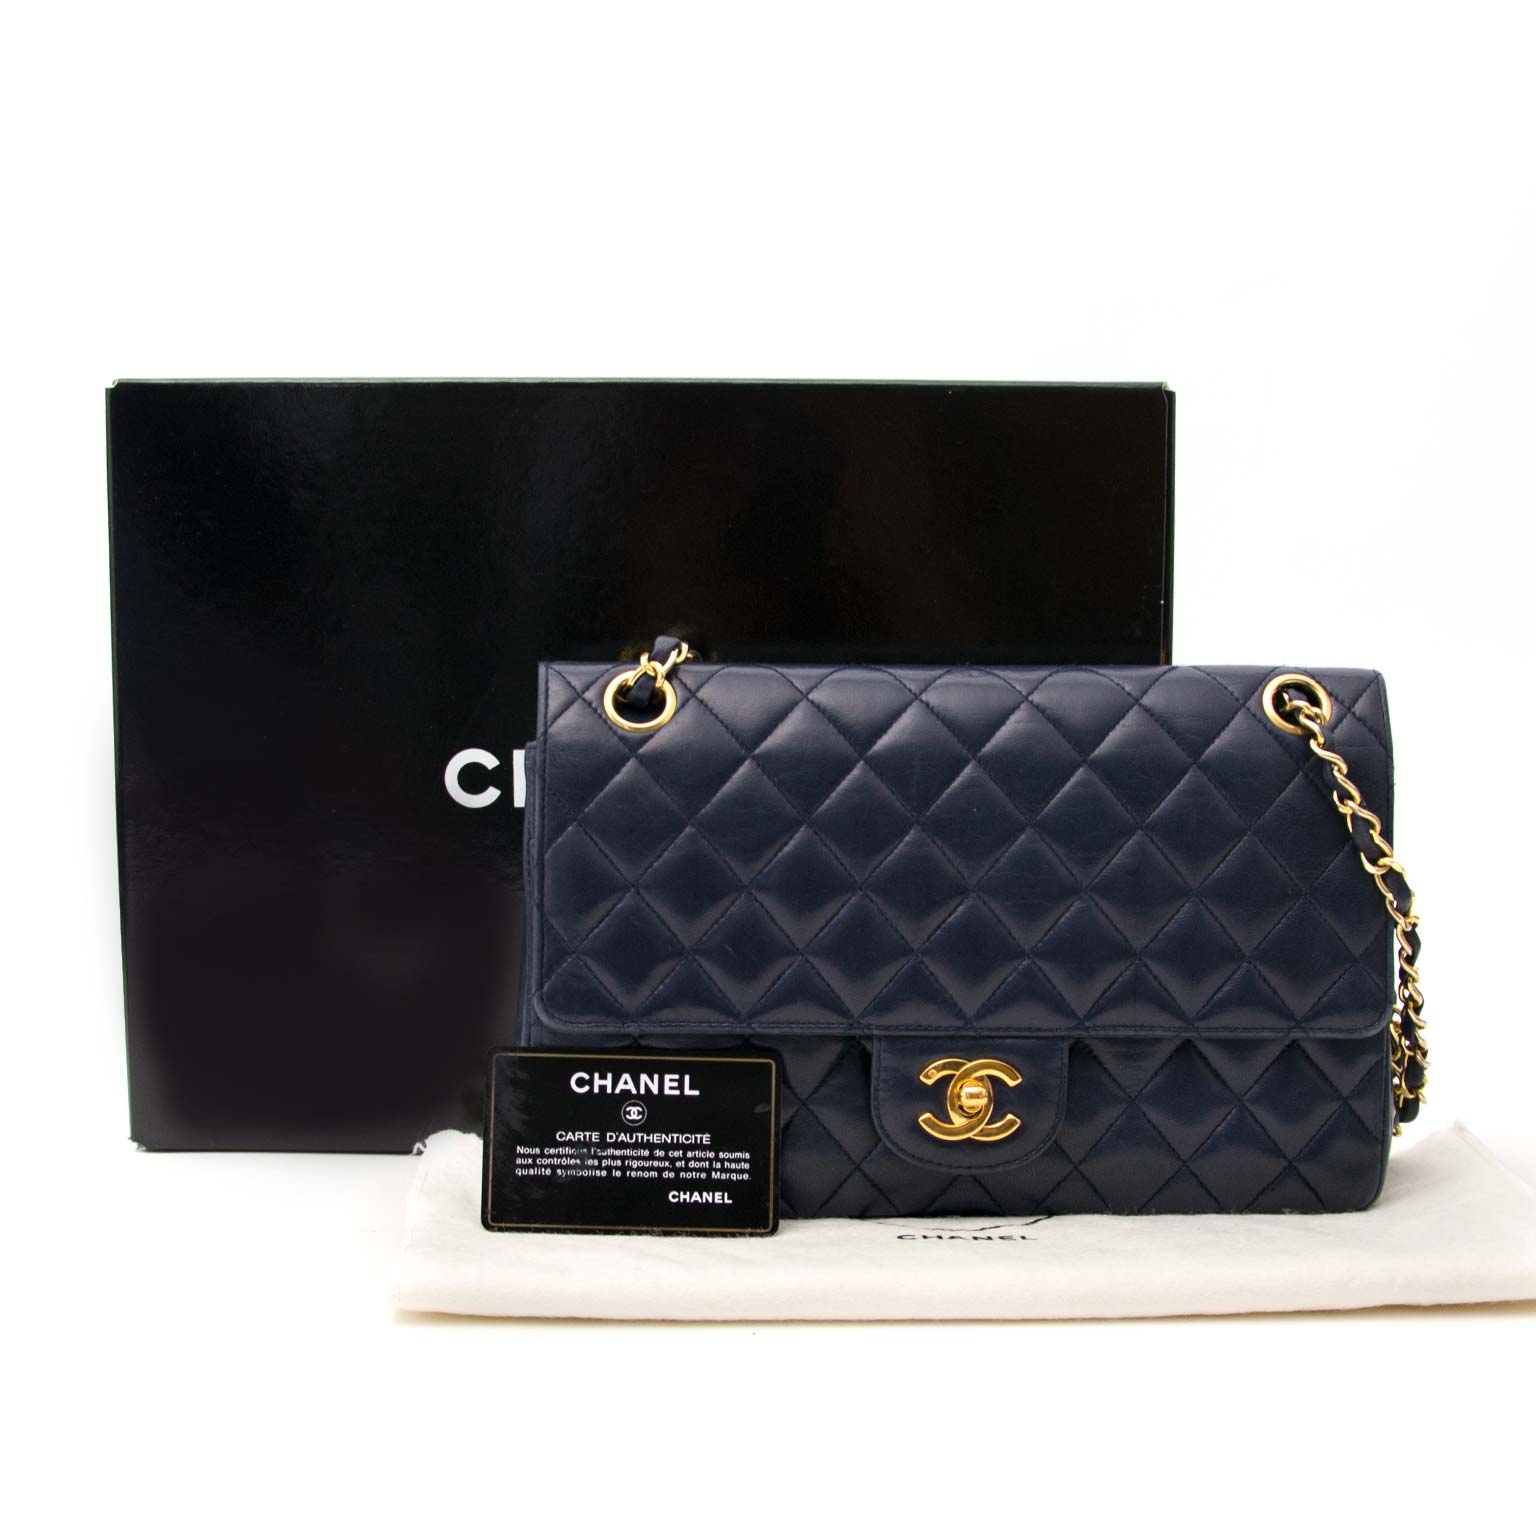 buy safe and secure online at labellov.com in antwerp chanel vintage blue leather classic flap bag